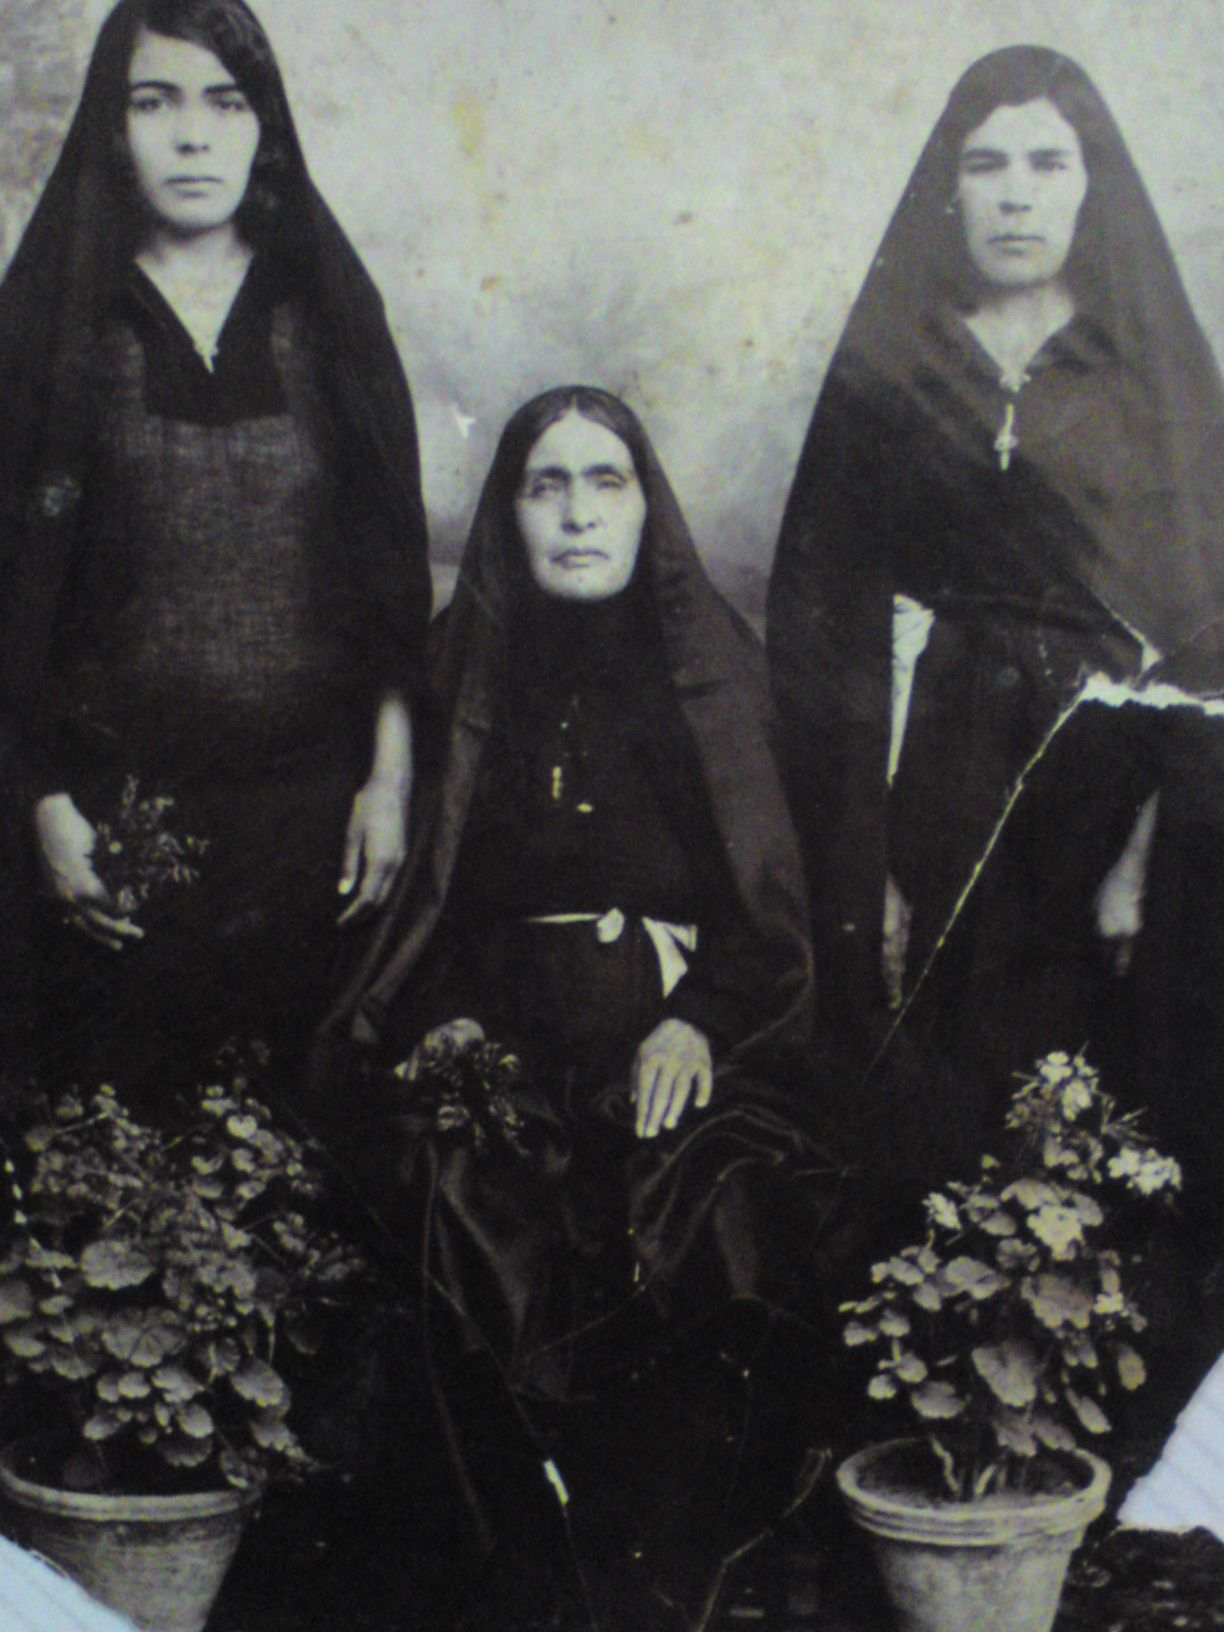 in the right side av picture is my grandma  Beyghom agha and  in the left her sister Sadaat,,,and there,s mamma,she was my  pappas grand ma,,Sakineh,,,year1900-1905